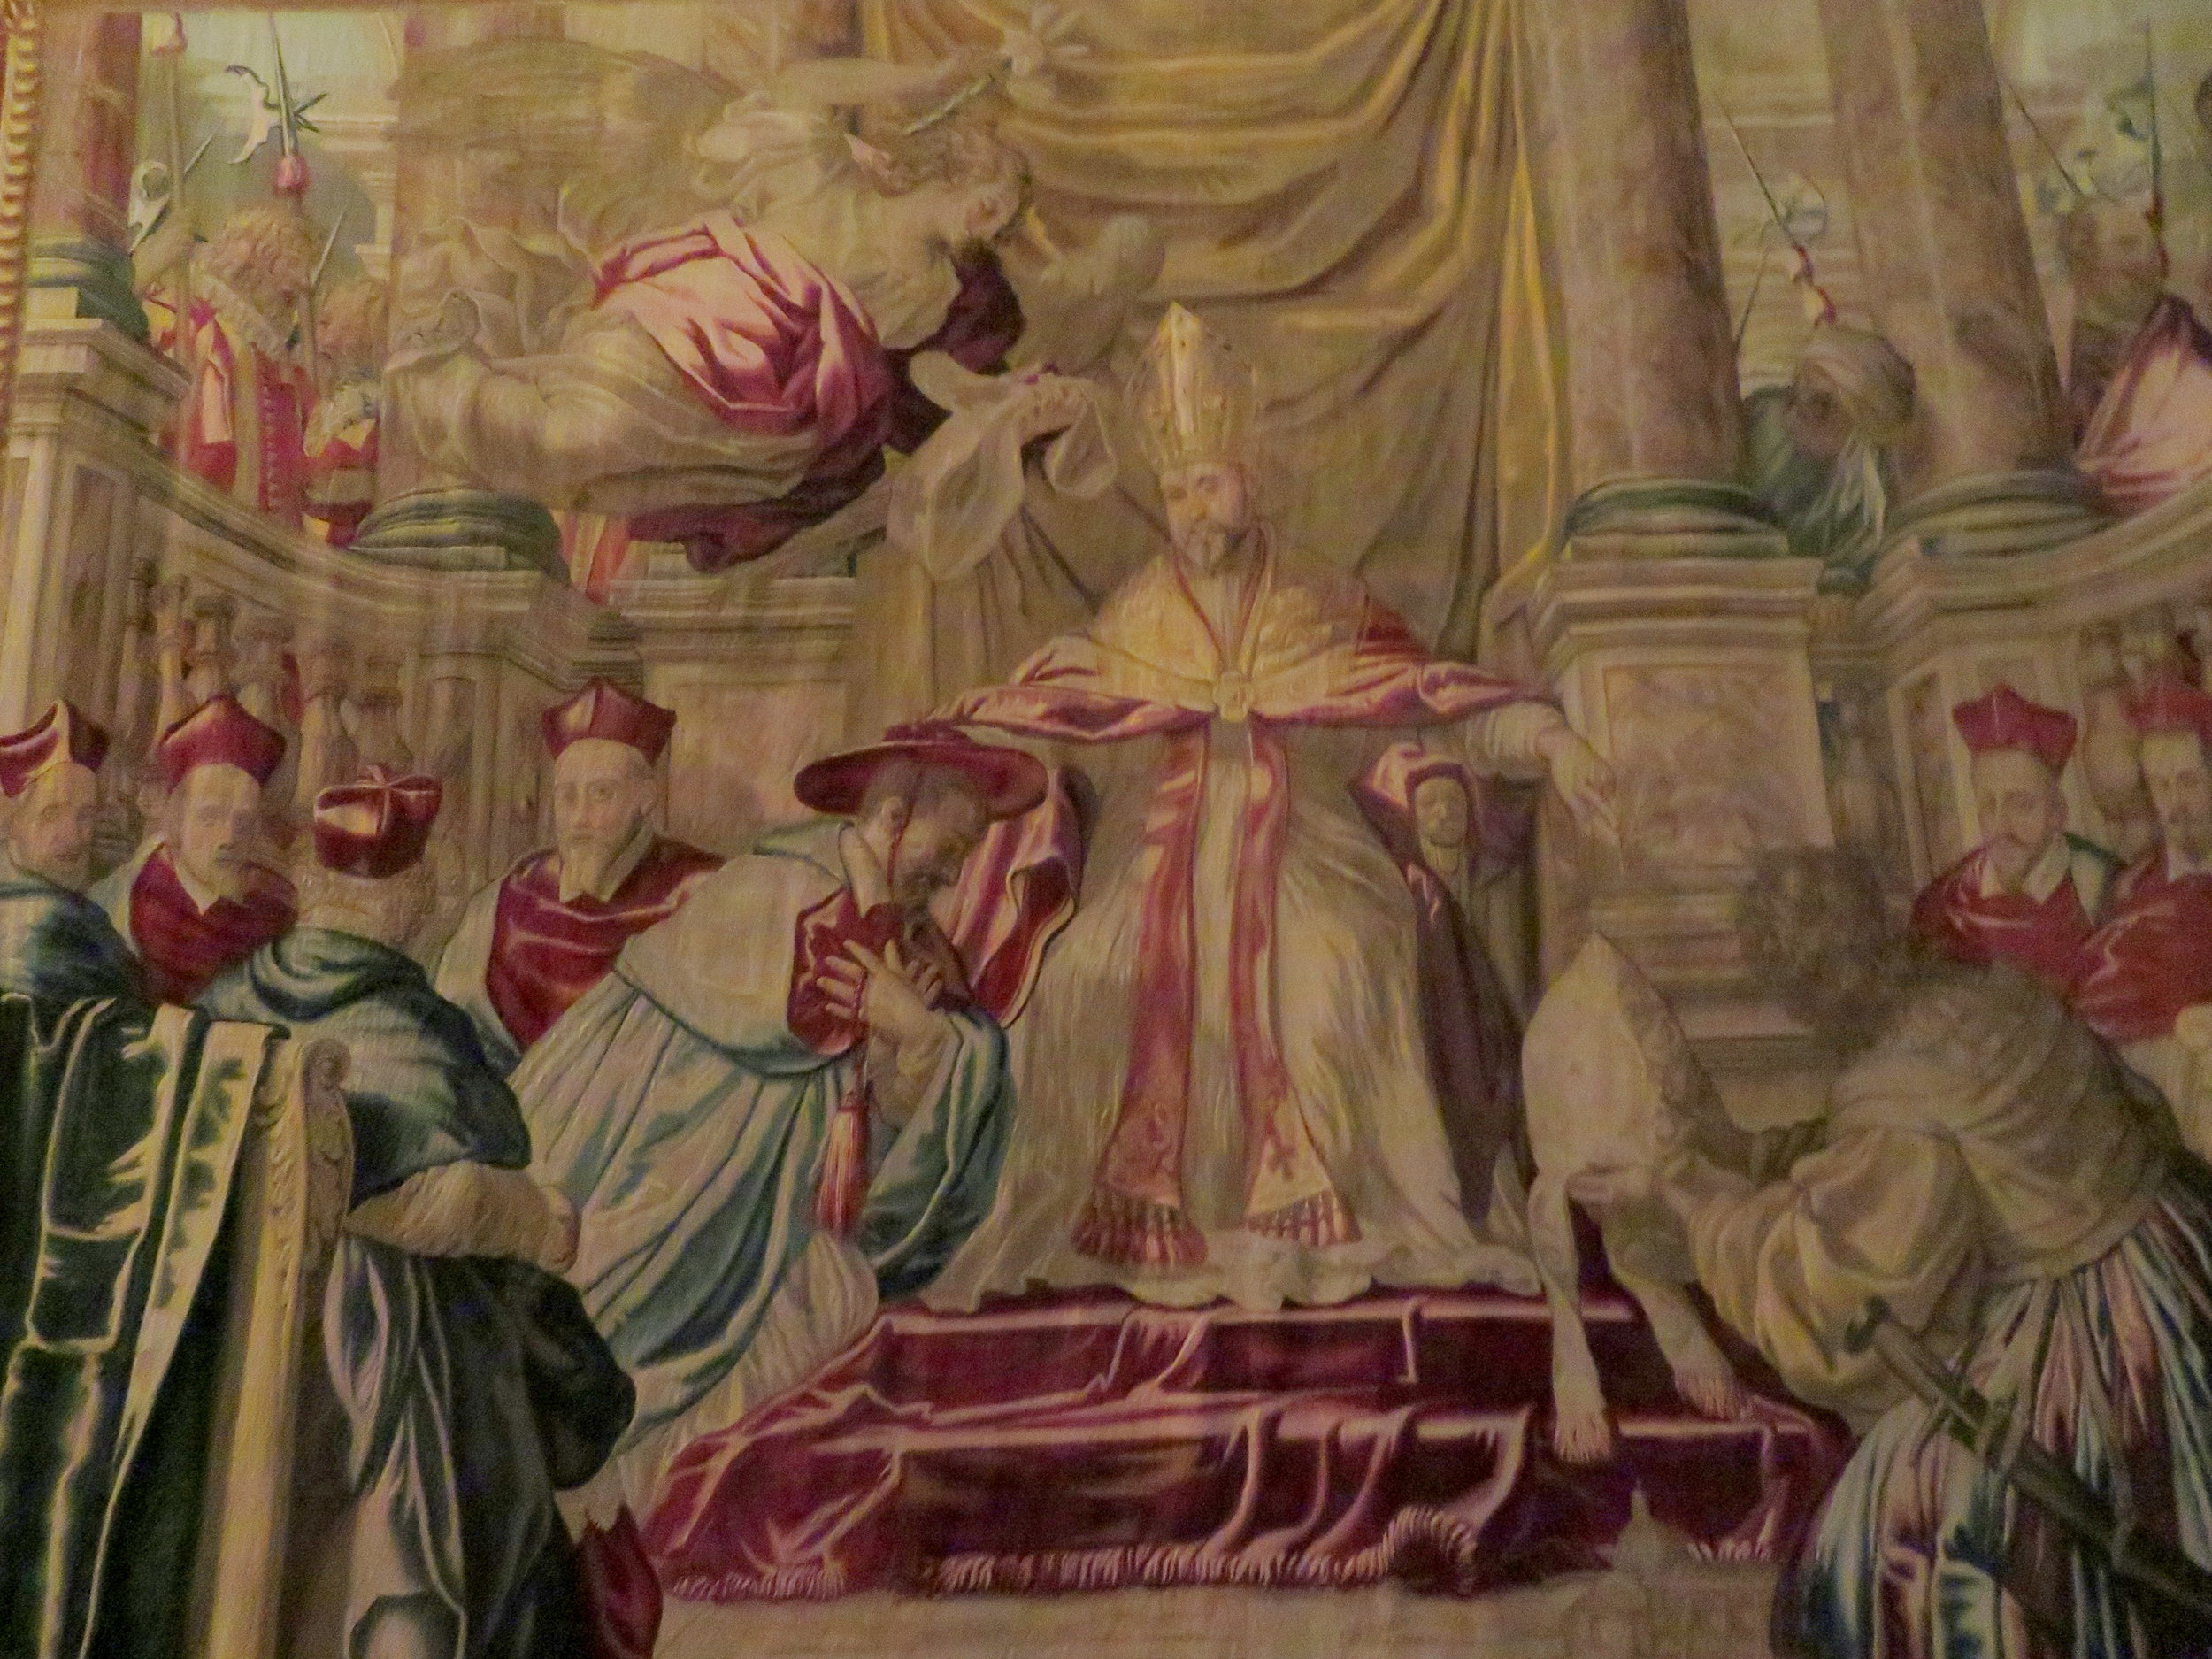 One of the magnificent tapestries on display.